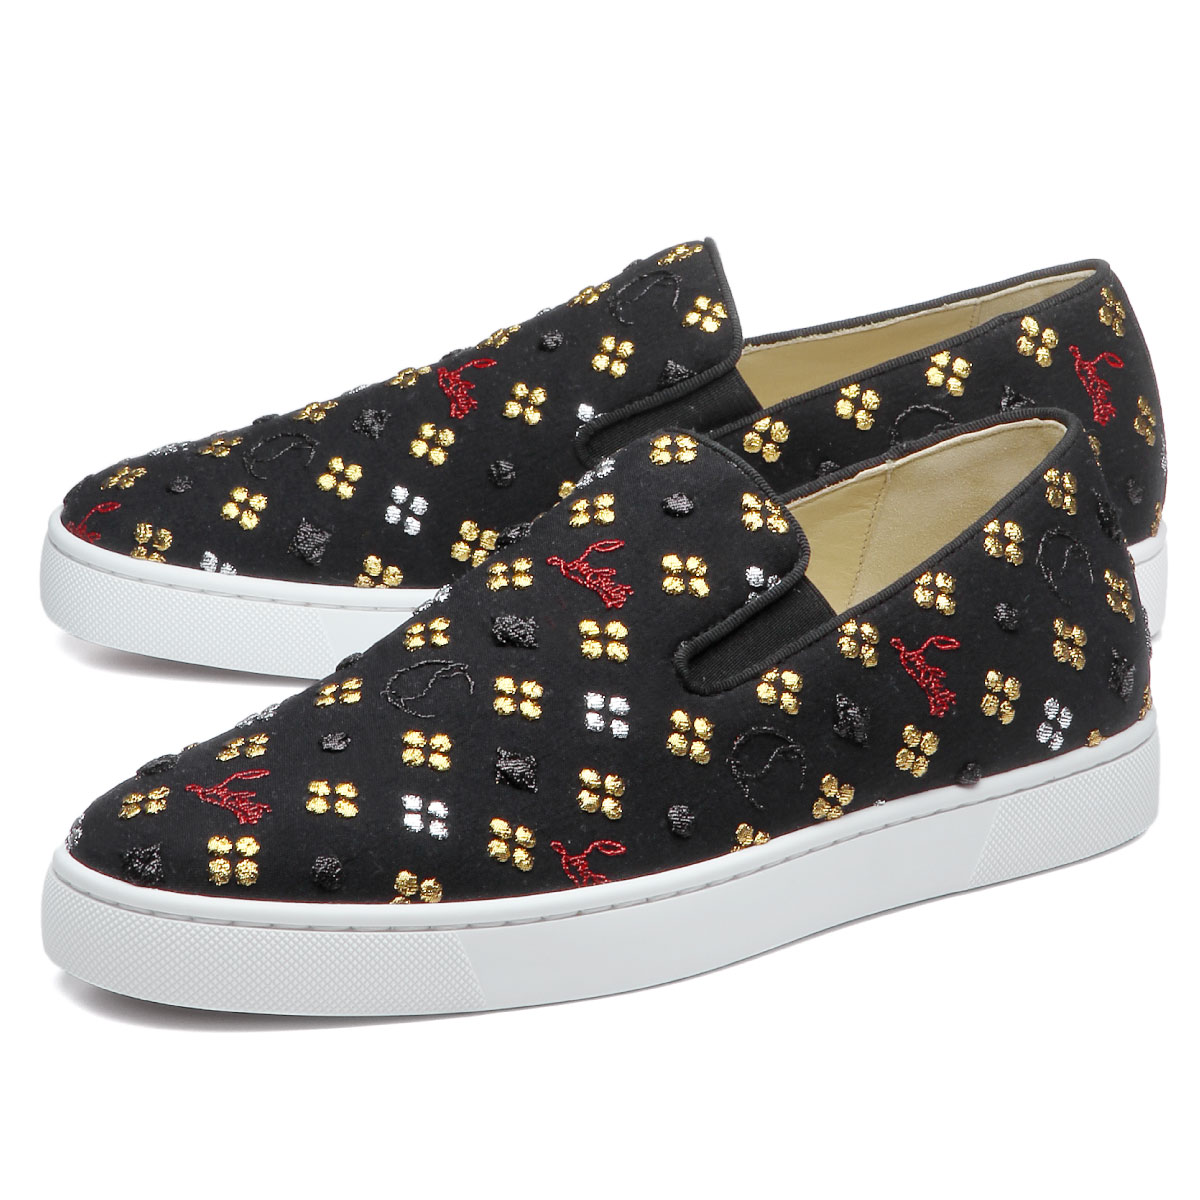 8949d0a92f98 importshopdouble  3180100 クリスチャンルブタン Christian Louboutin shoes men M024 slip -ons BOAT FLAT LOUBI IN THE SKY boat flat agate in the sky MULTI black ...